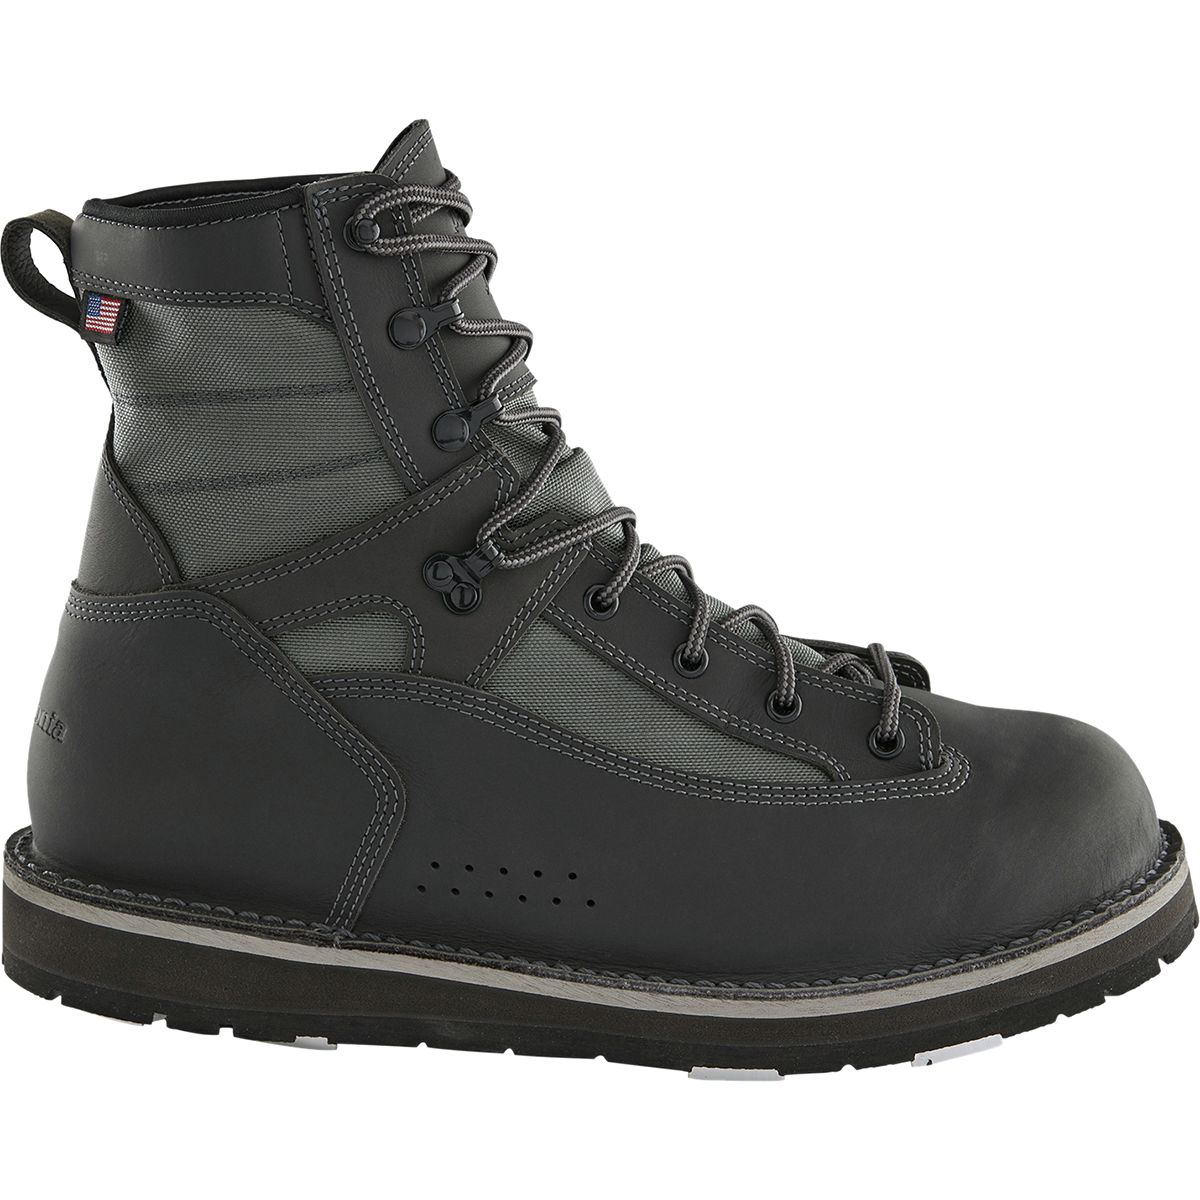 photo: Patagonia Foot Tractor Wading Boots - Aluminum Bar (Built by Danner) wading boots